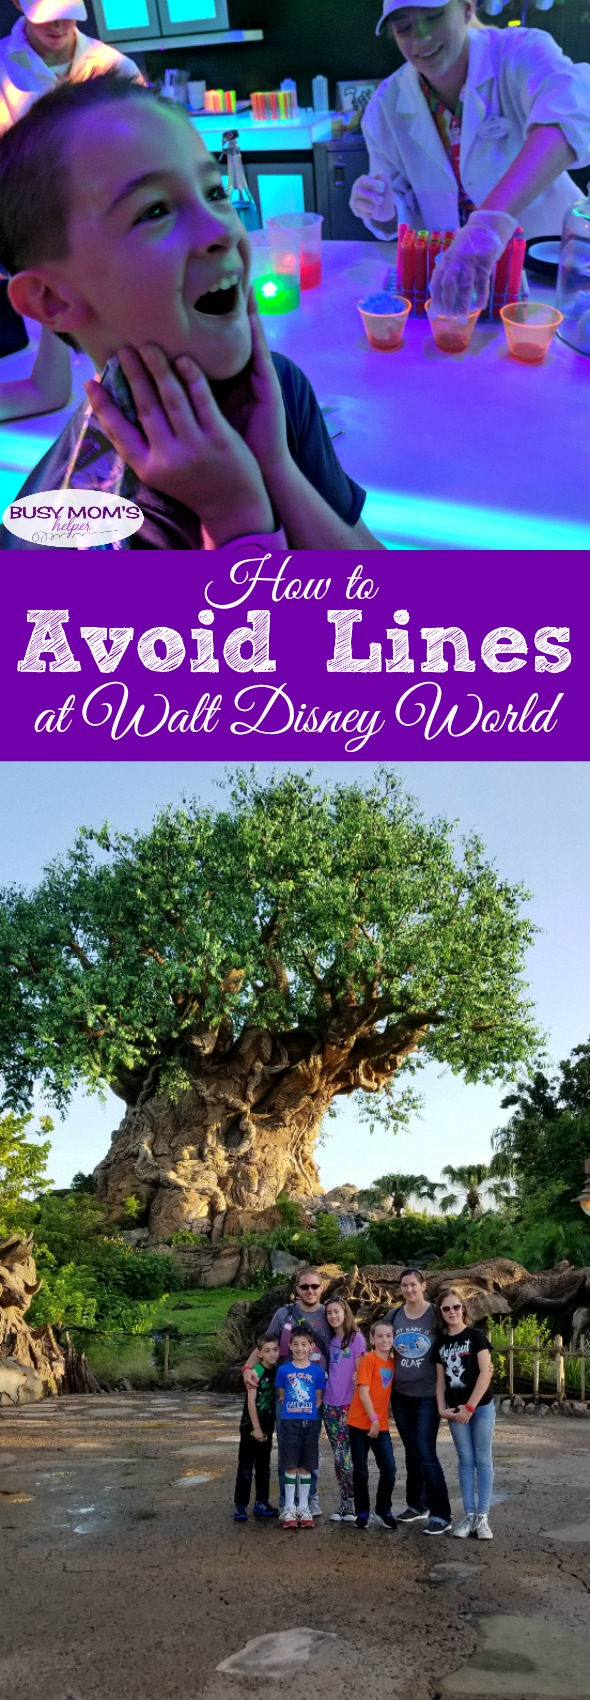 How to Avoid Lines at Walt Disney World #partner #waltdisneyworld #travel #michaelsvips #tourguide #disneyparks #disneytrip #disneytips #familytravel